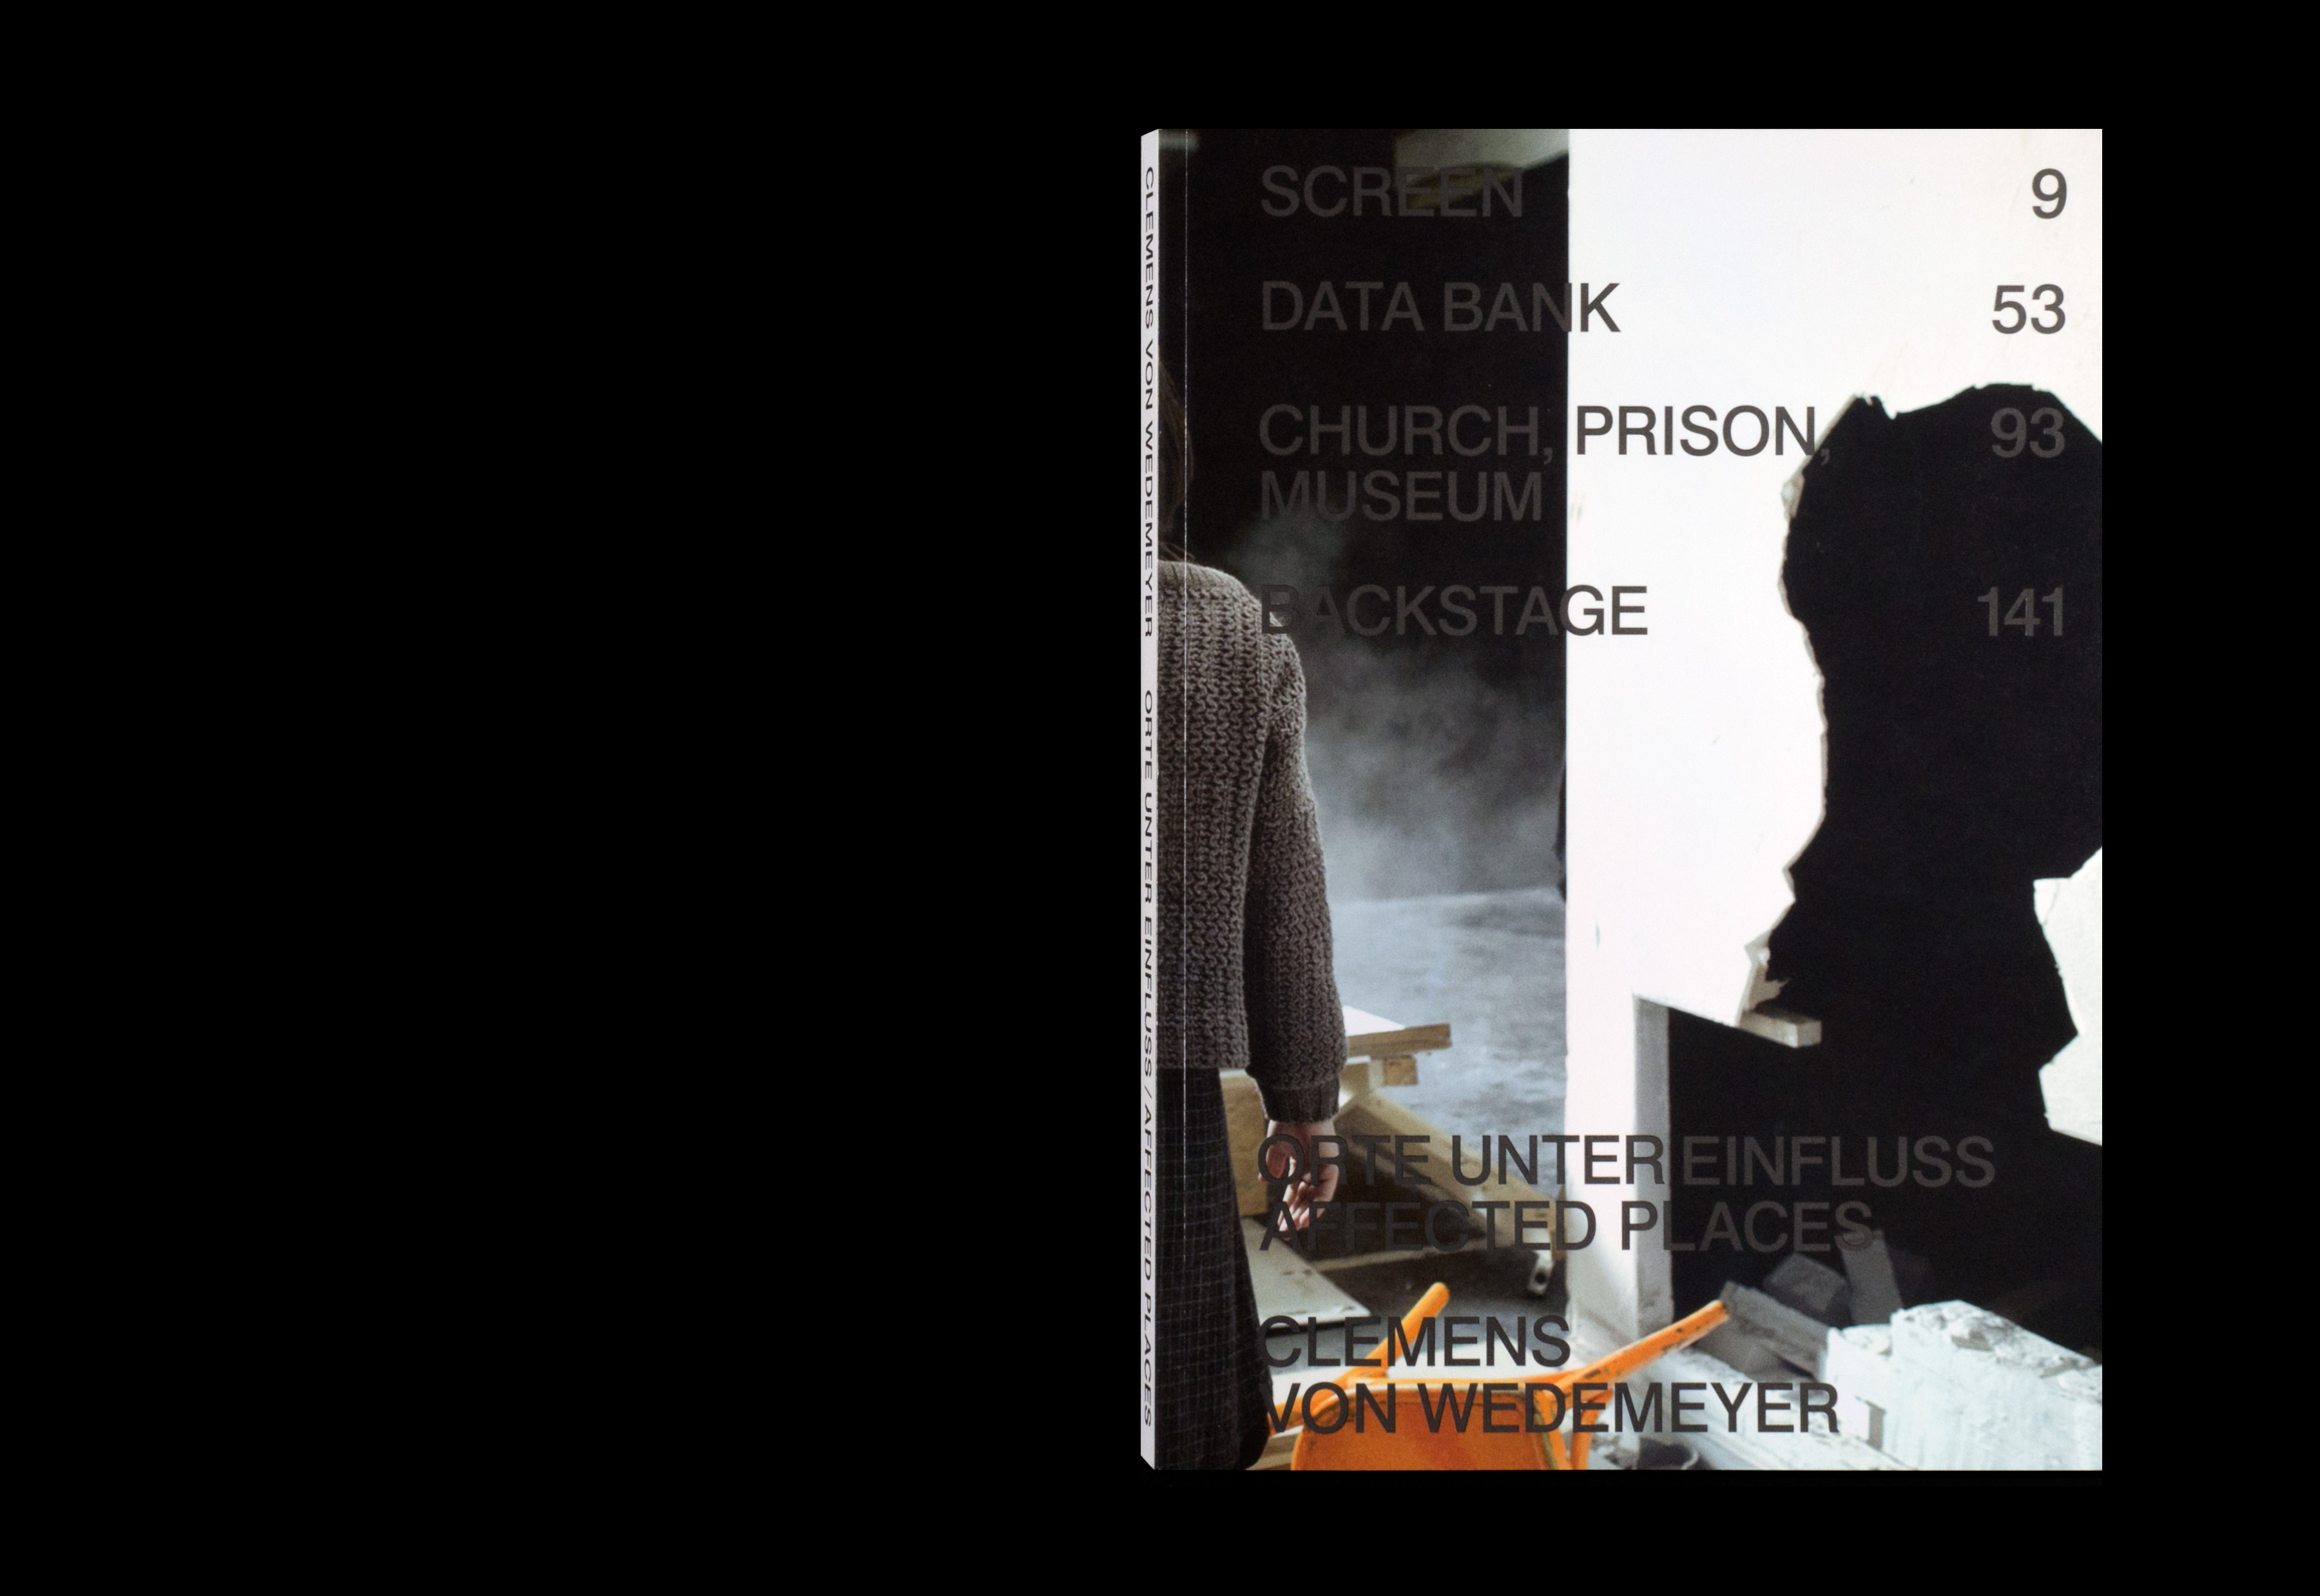 Fabian Bremer / Pascal Storz: Clemens von Wedemeyer, Orte unter Einfluss / Affected Places